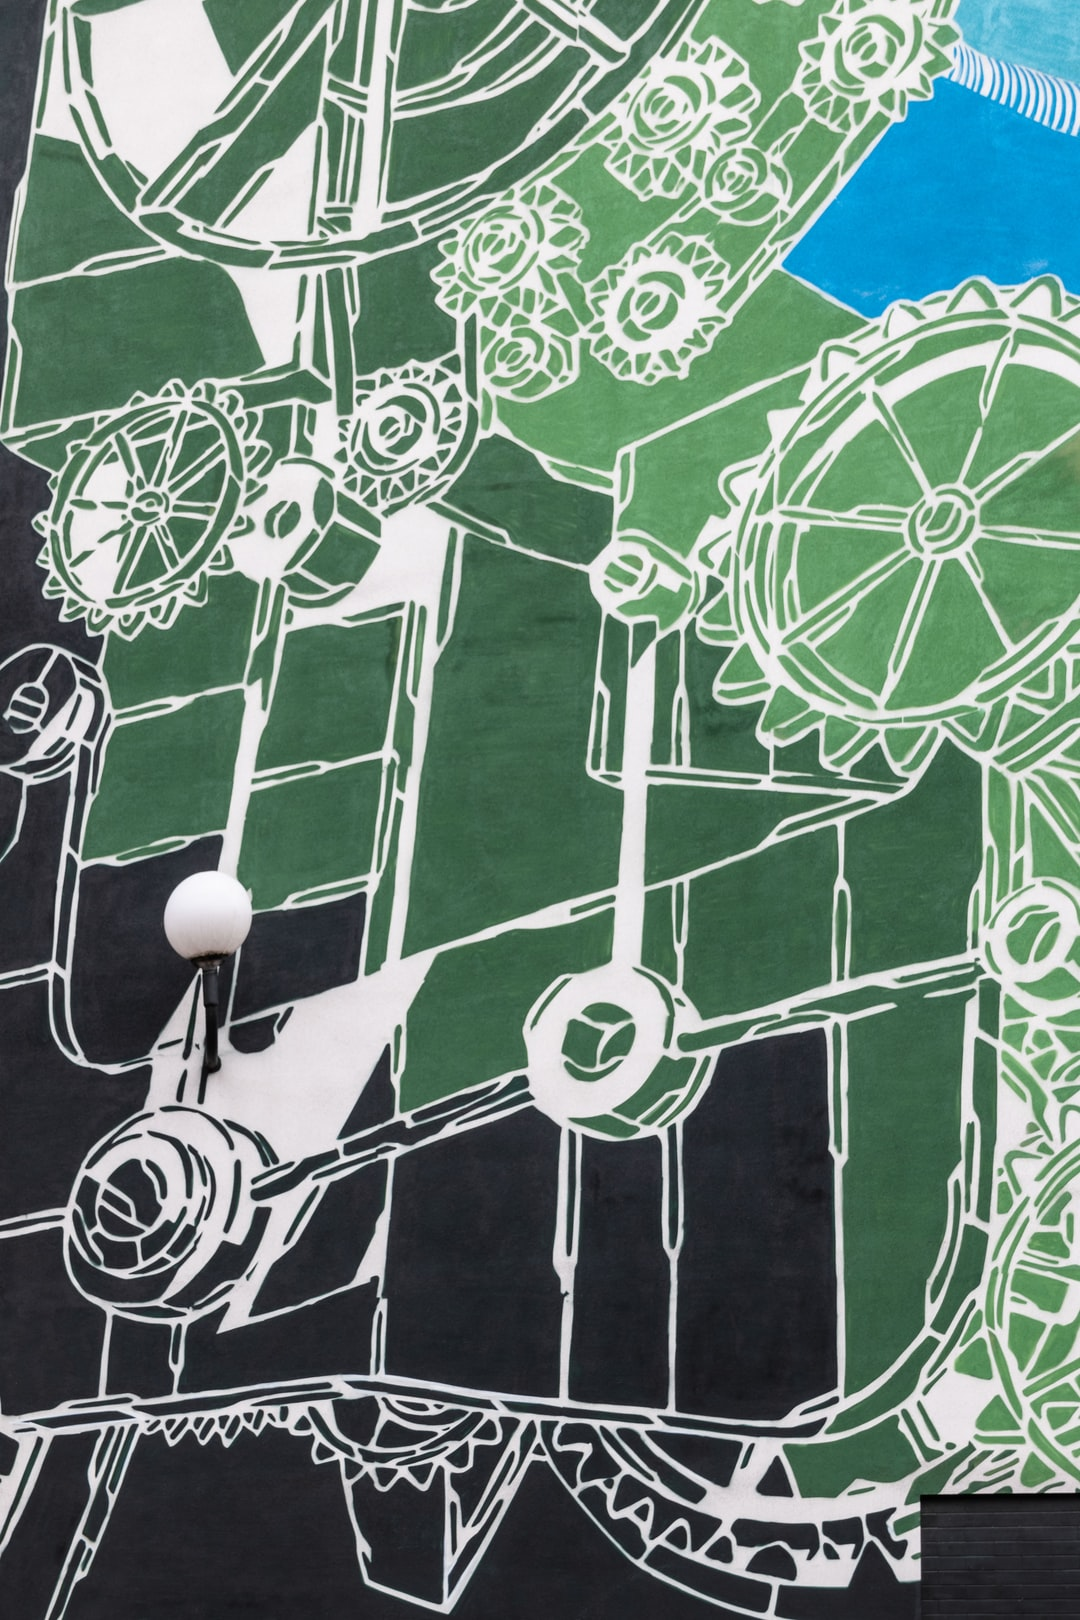 I found this mural last weekend during my visit to Bielsko-Biała. It refers to the textile industry.